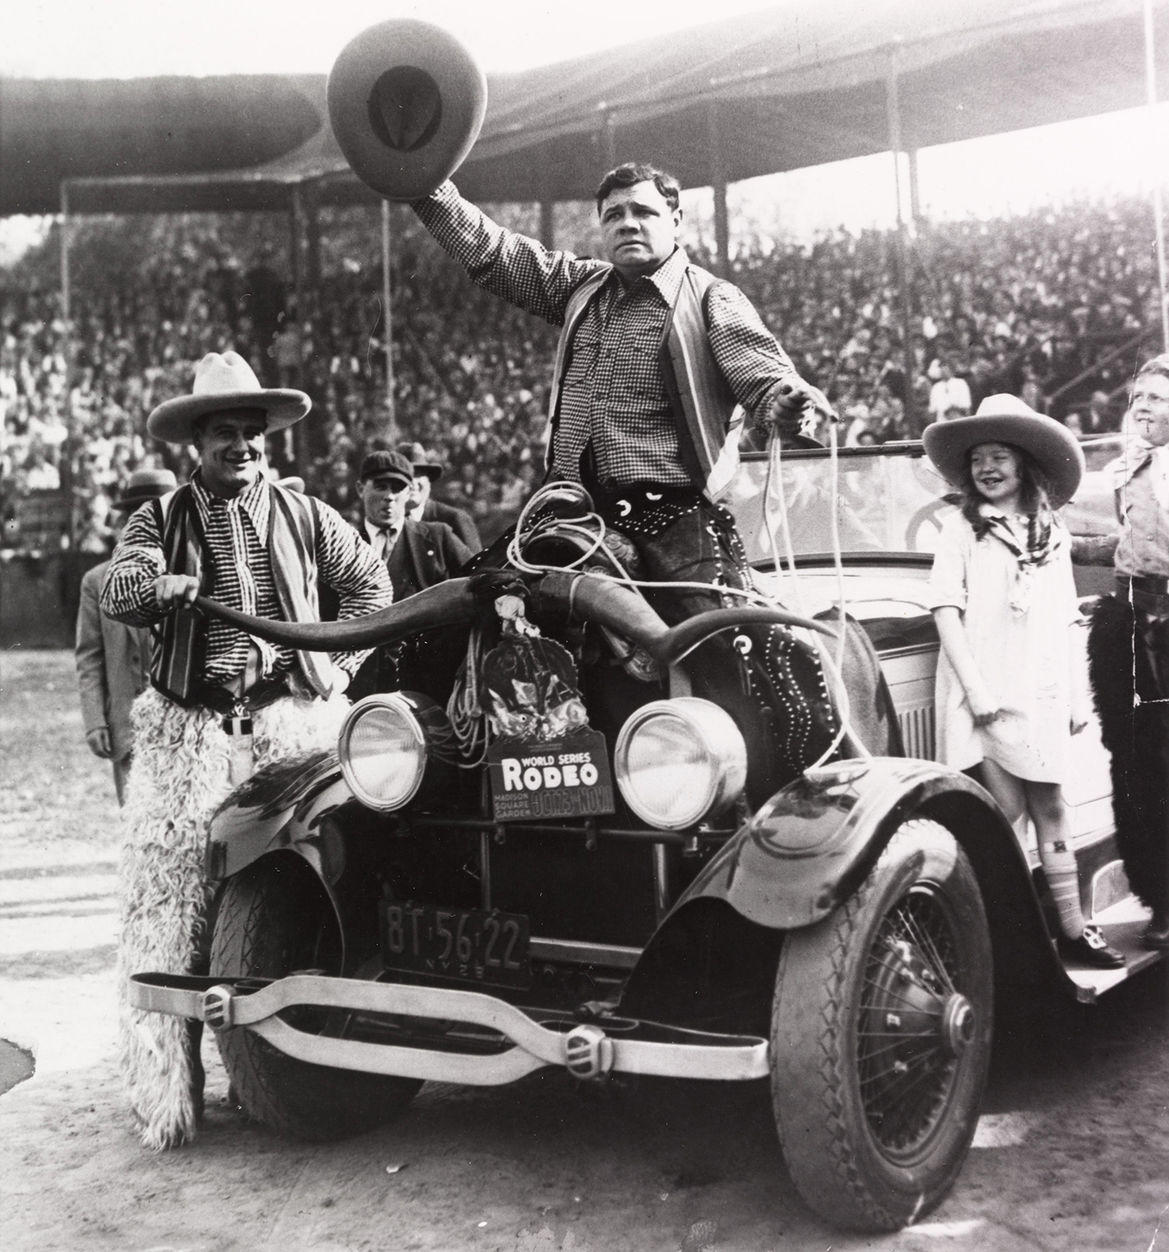 "Babe Ruth sits on a car and waves his cowboy hat to the crowd while Lou Gehrig stands beside the car and smiles during an advertising stunt for the World Series Rodeo. <a href=""http://collection.baseballhall.org/islandora/object/islandora%3A214527"">PASTIME</a>"